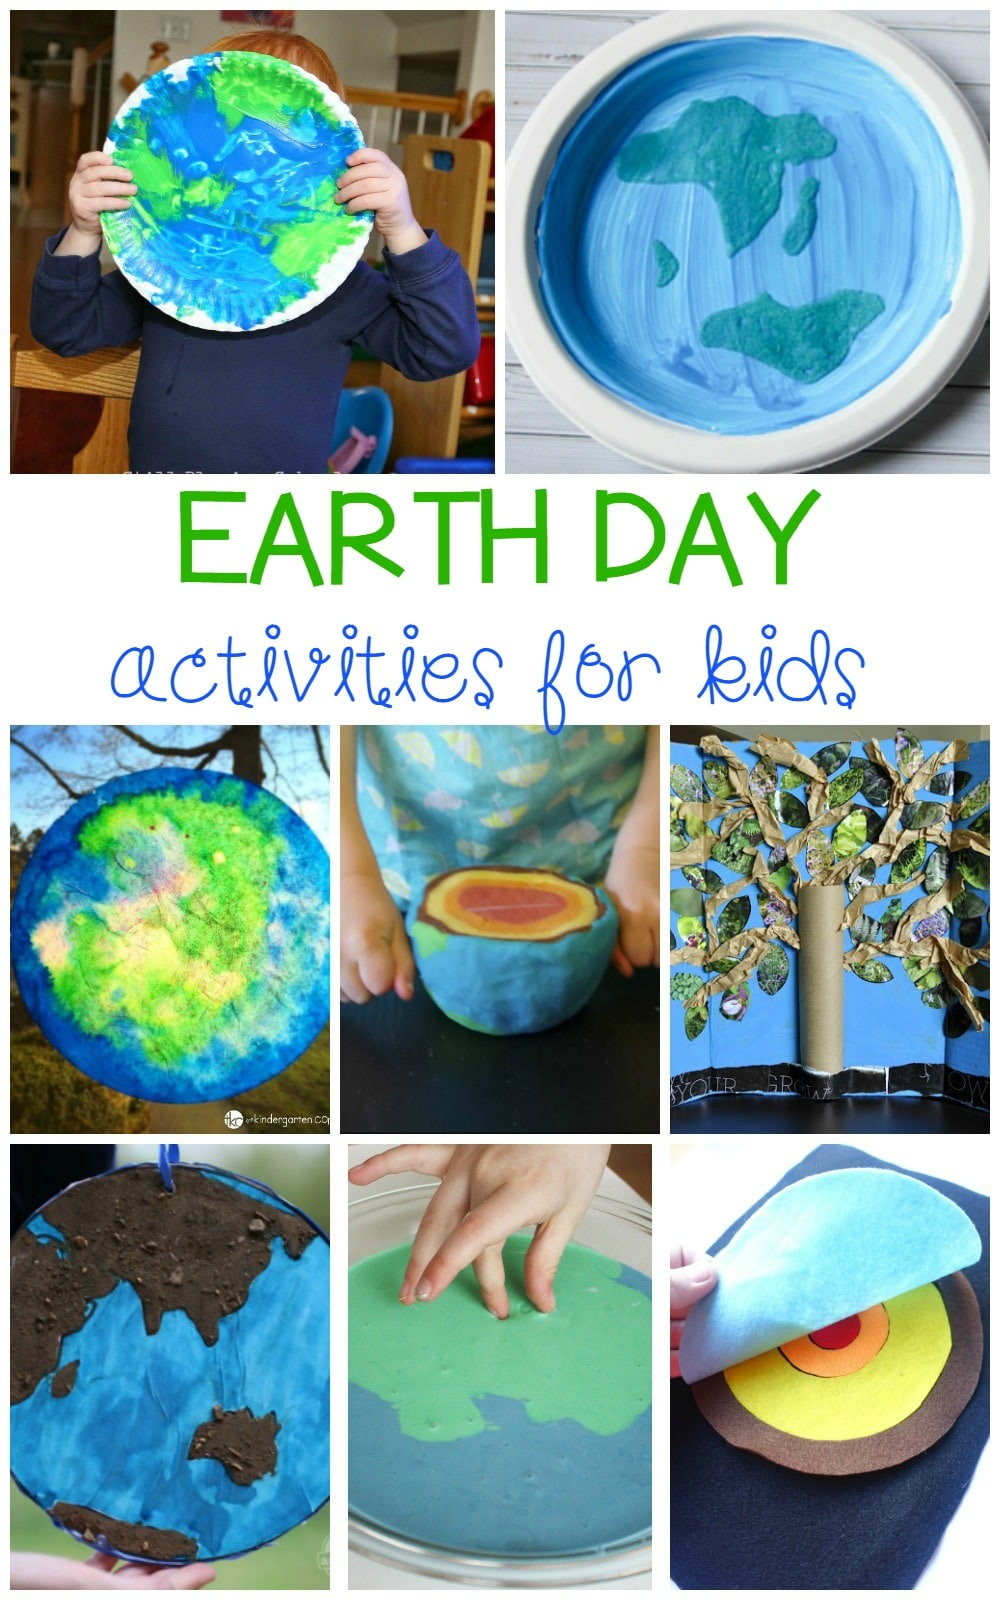 Try these Earth Day activities for kids this year - kids will love learning about how to care for the earth with these fun crafts and activities!